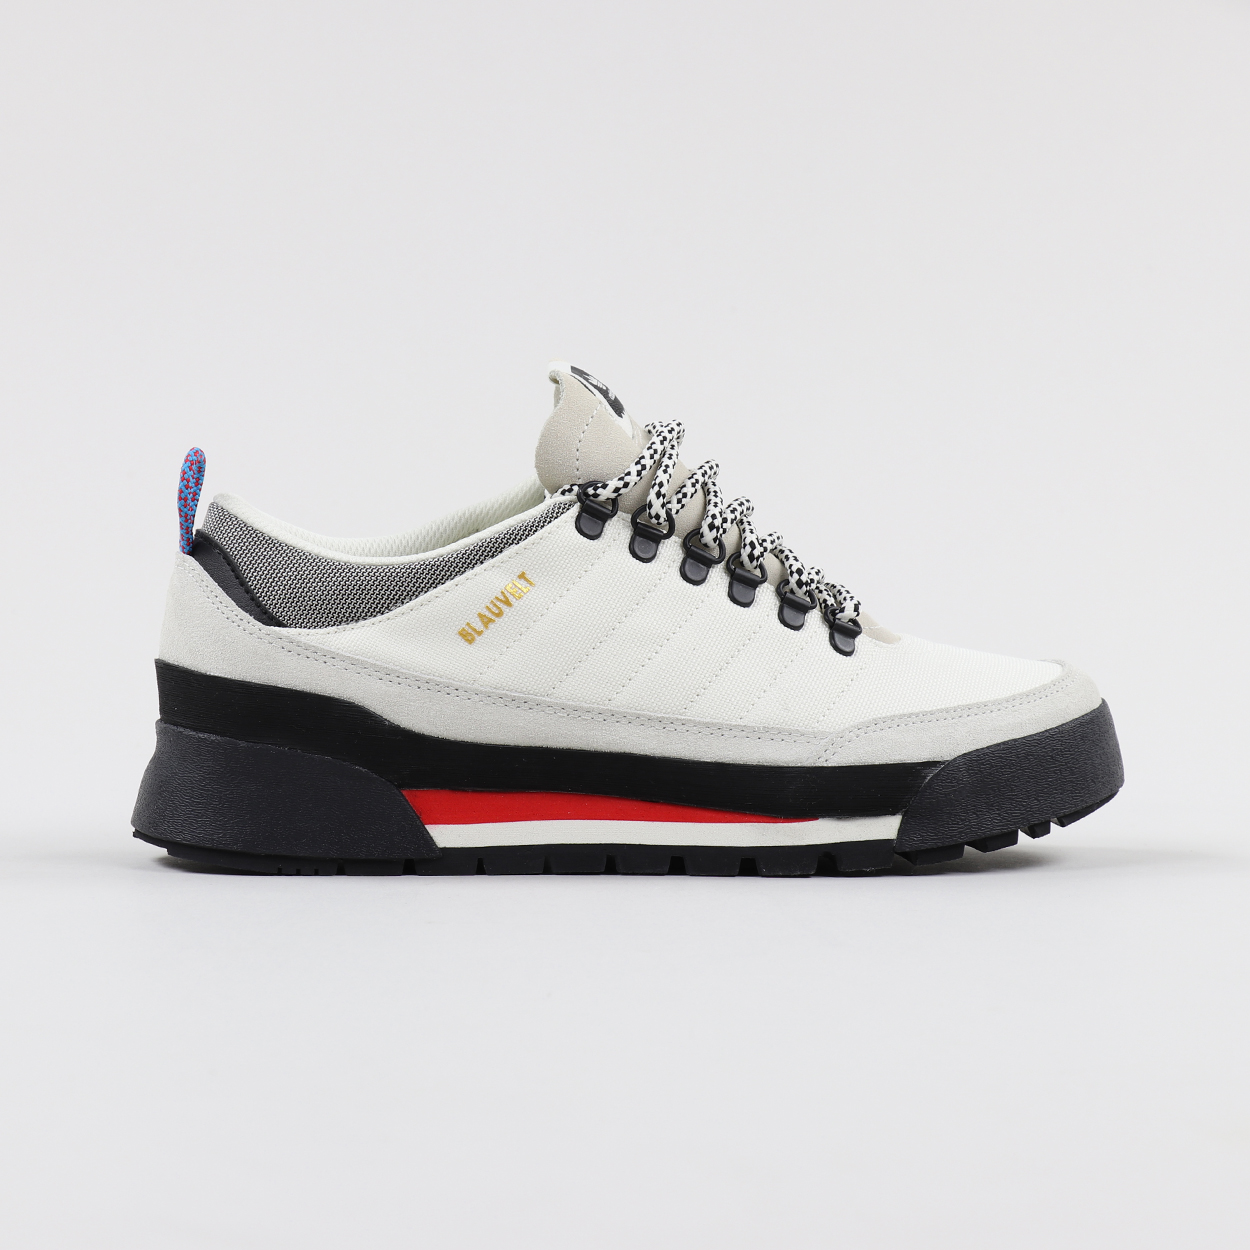 timeless design 12a18 ae0a9 Adidas Skateboarding Mens Jake Boot 2 Low Shoes White Black £89.00